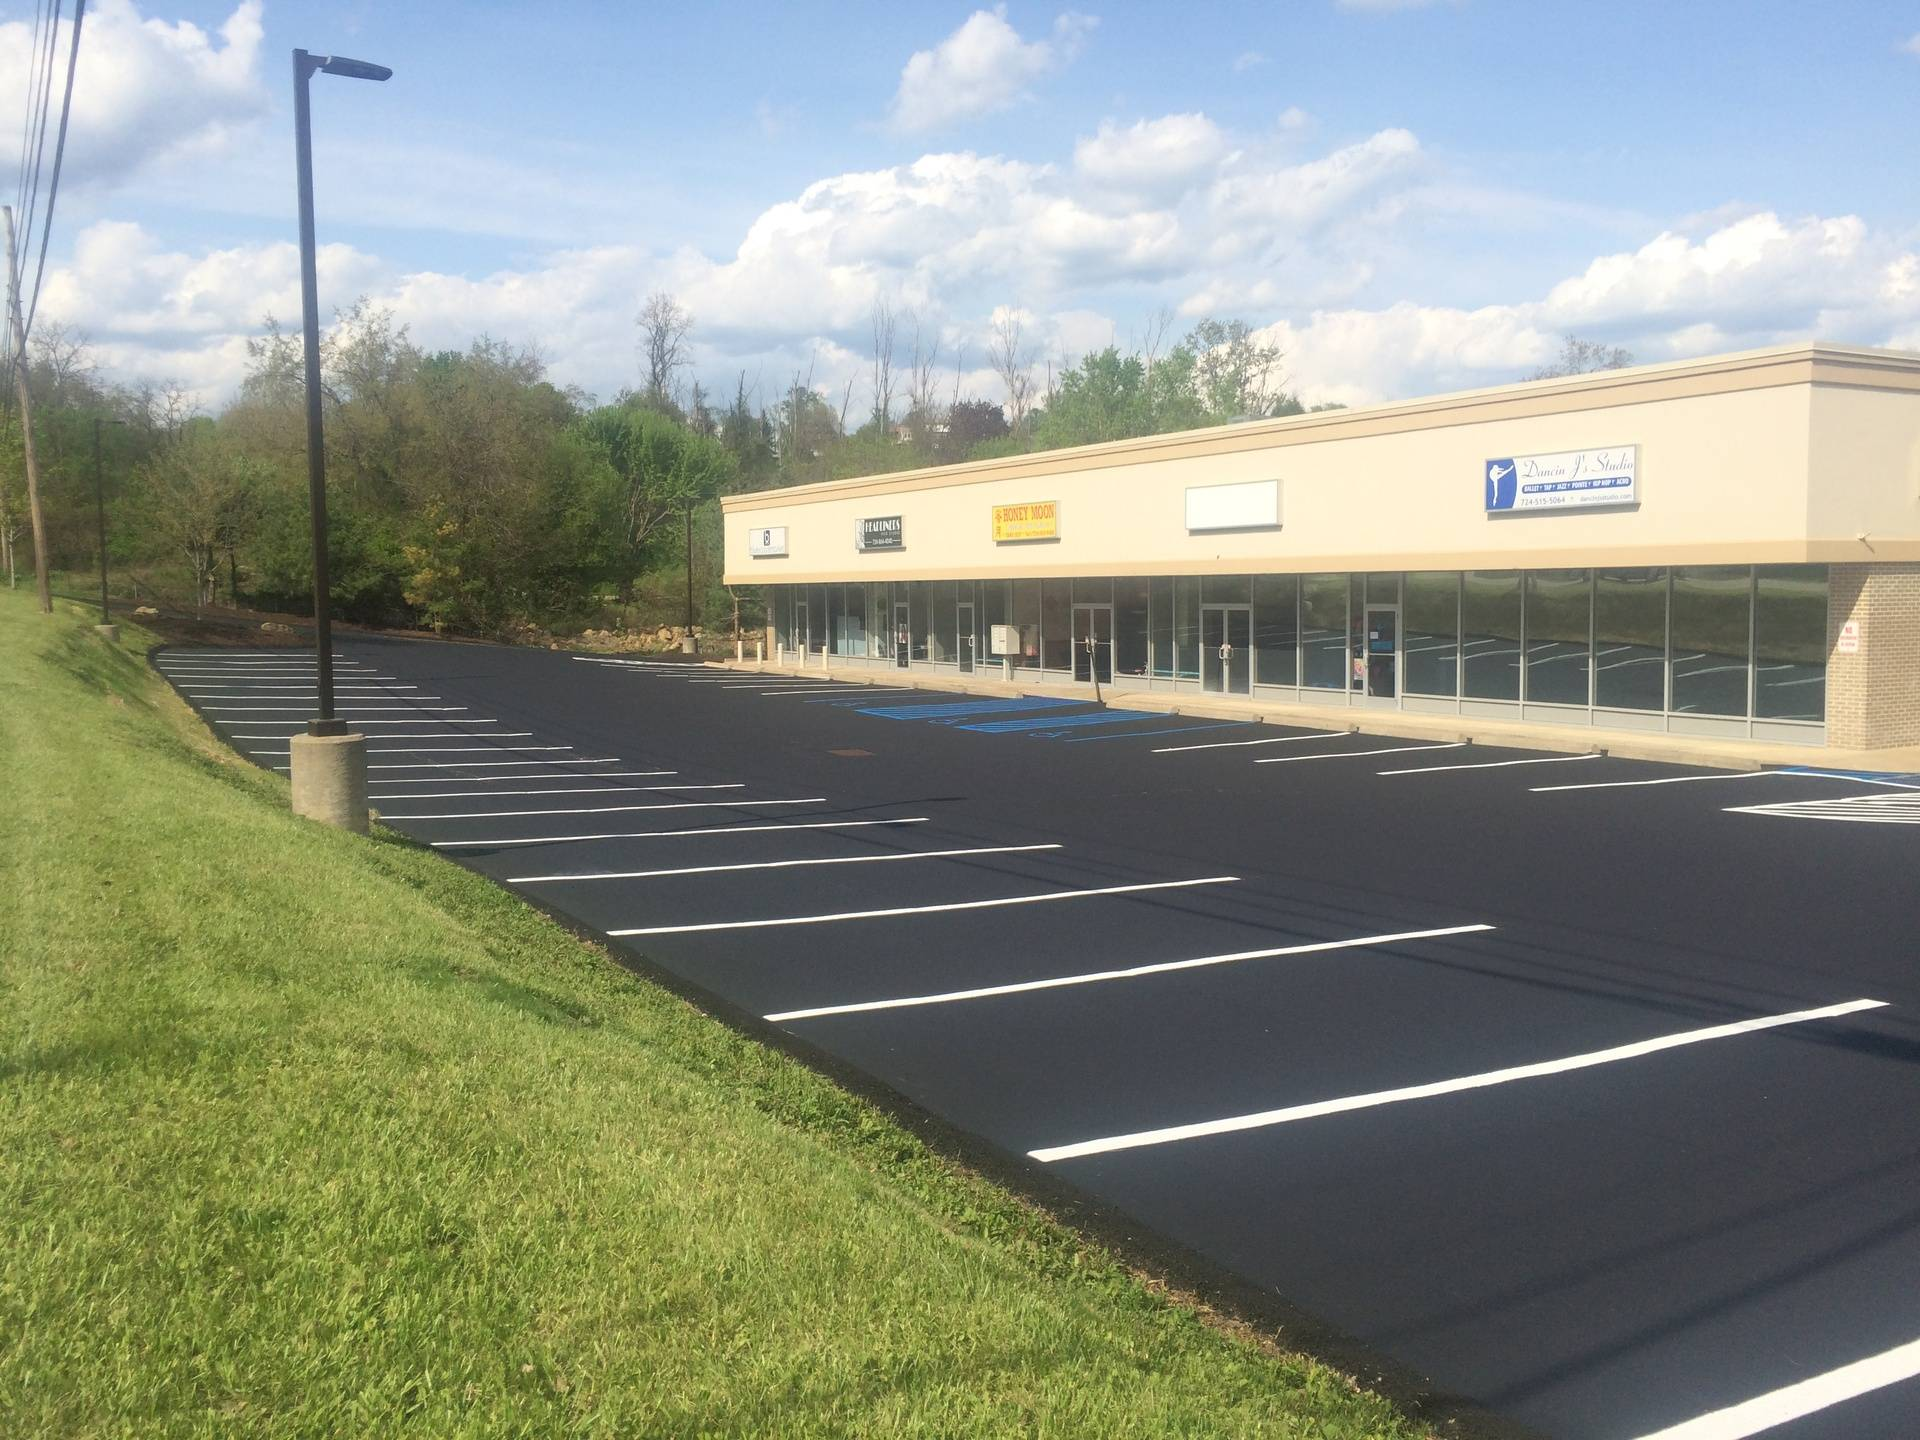 Clay Pike Shopping Center